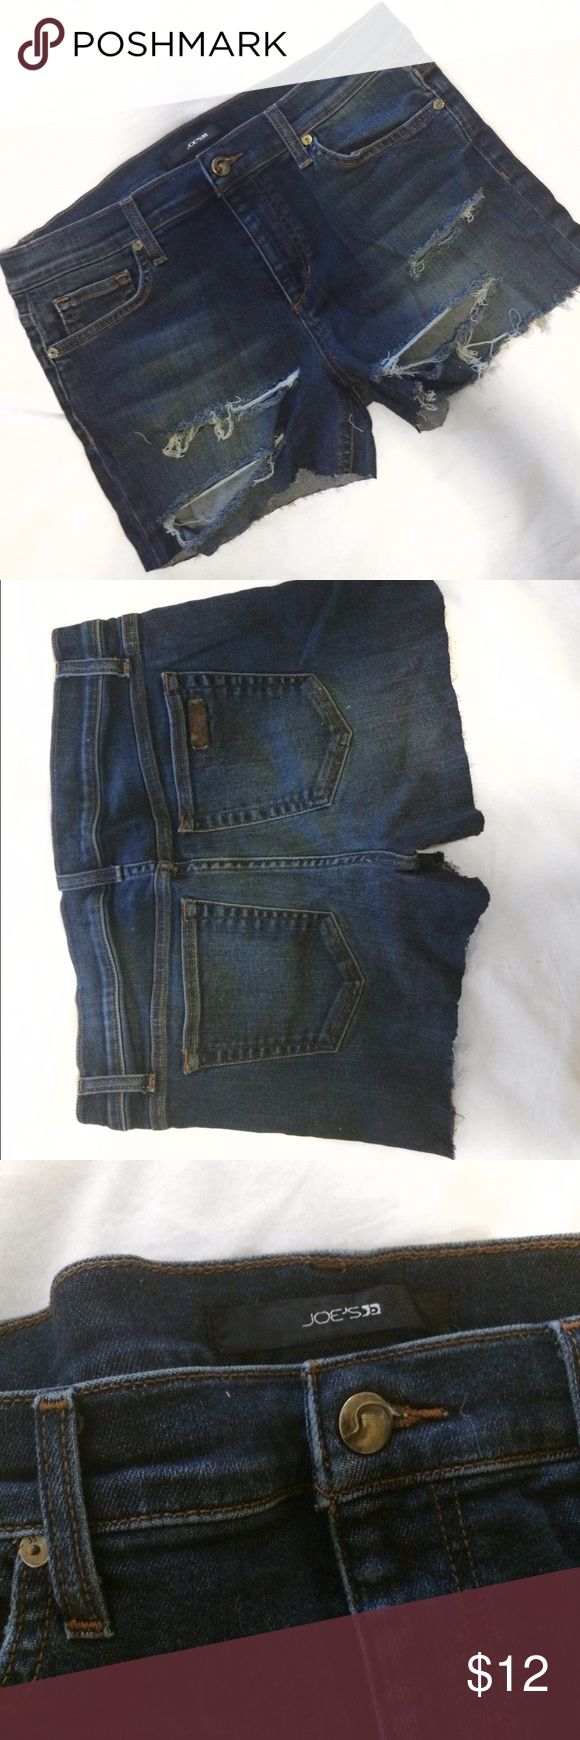 Joe's Jeans Cutoff shorts Distressed/ripped denim shorts from joe's jeans. Used to be jeans so not cutoff 100% evenly but they still look great. Size 31. Joe's Jeans Jeans